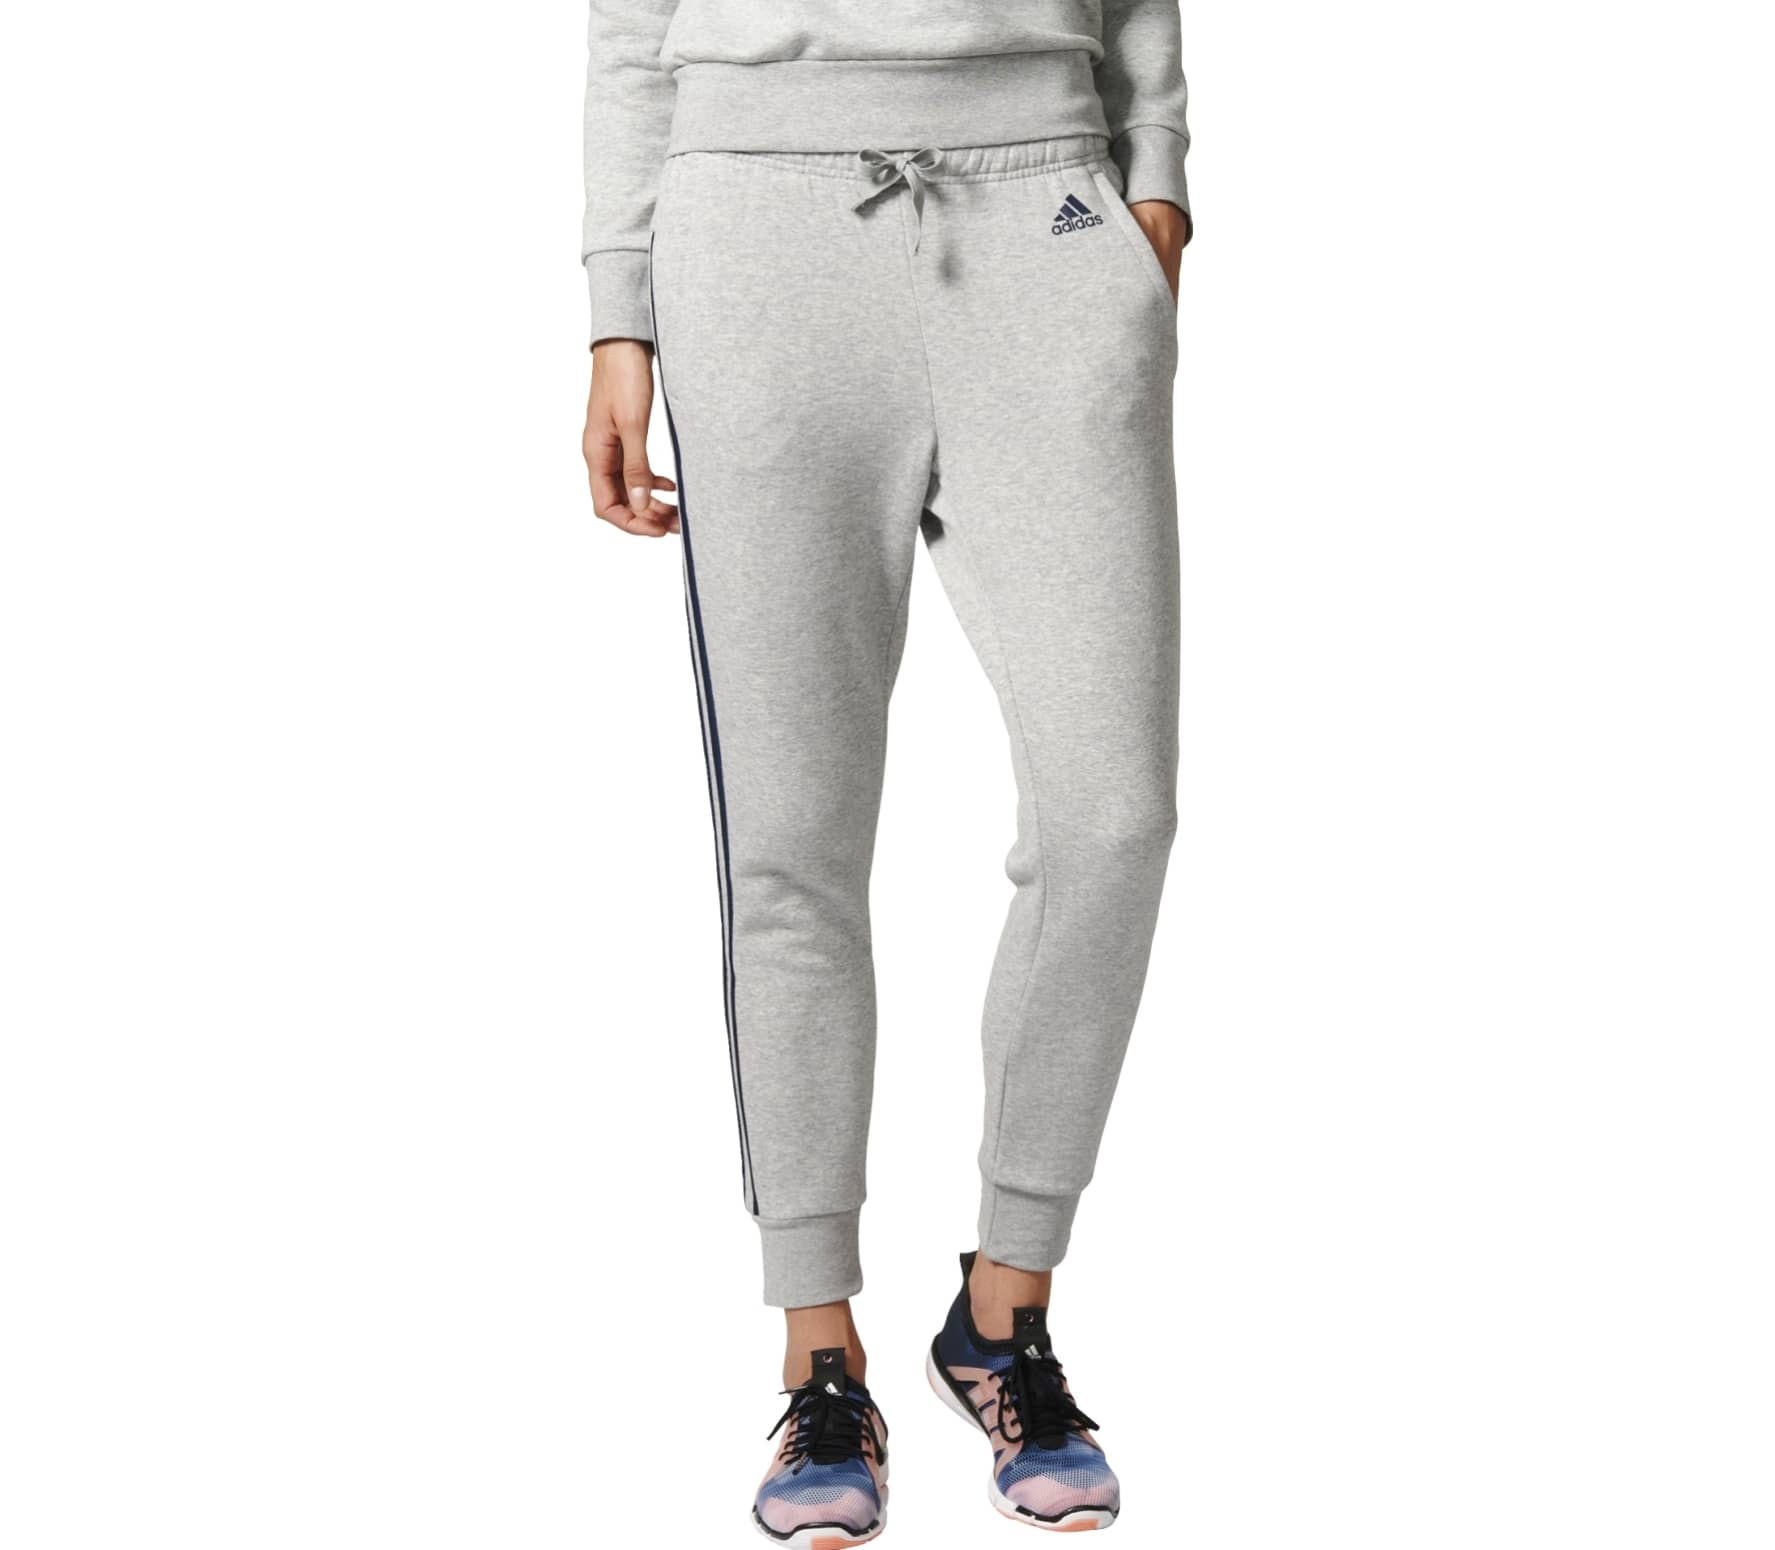 adidas Essentials 3 Stripes Tapered women's training pants Women